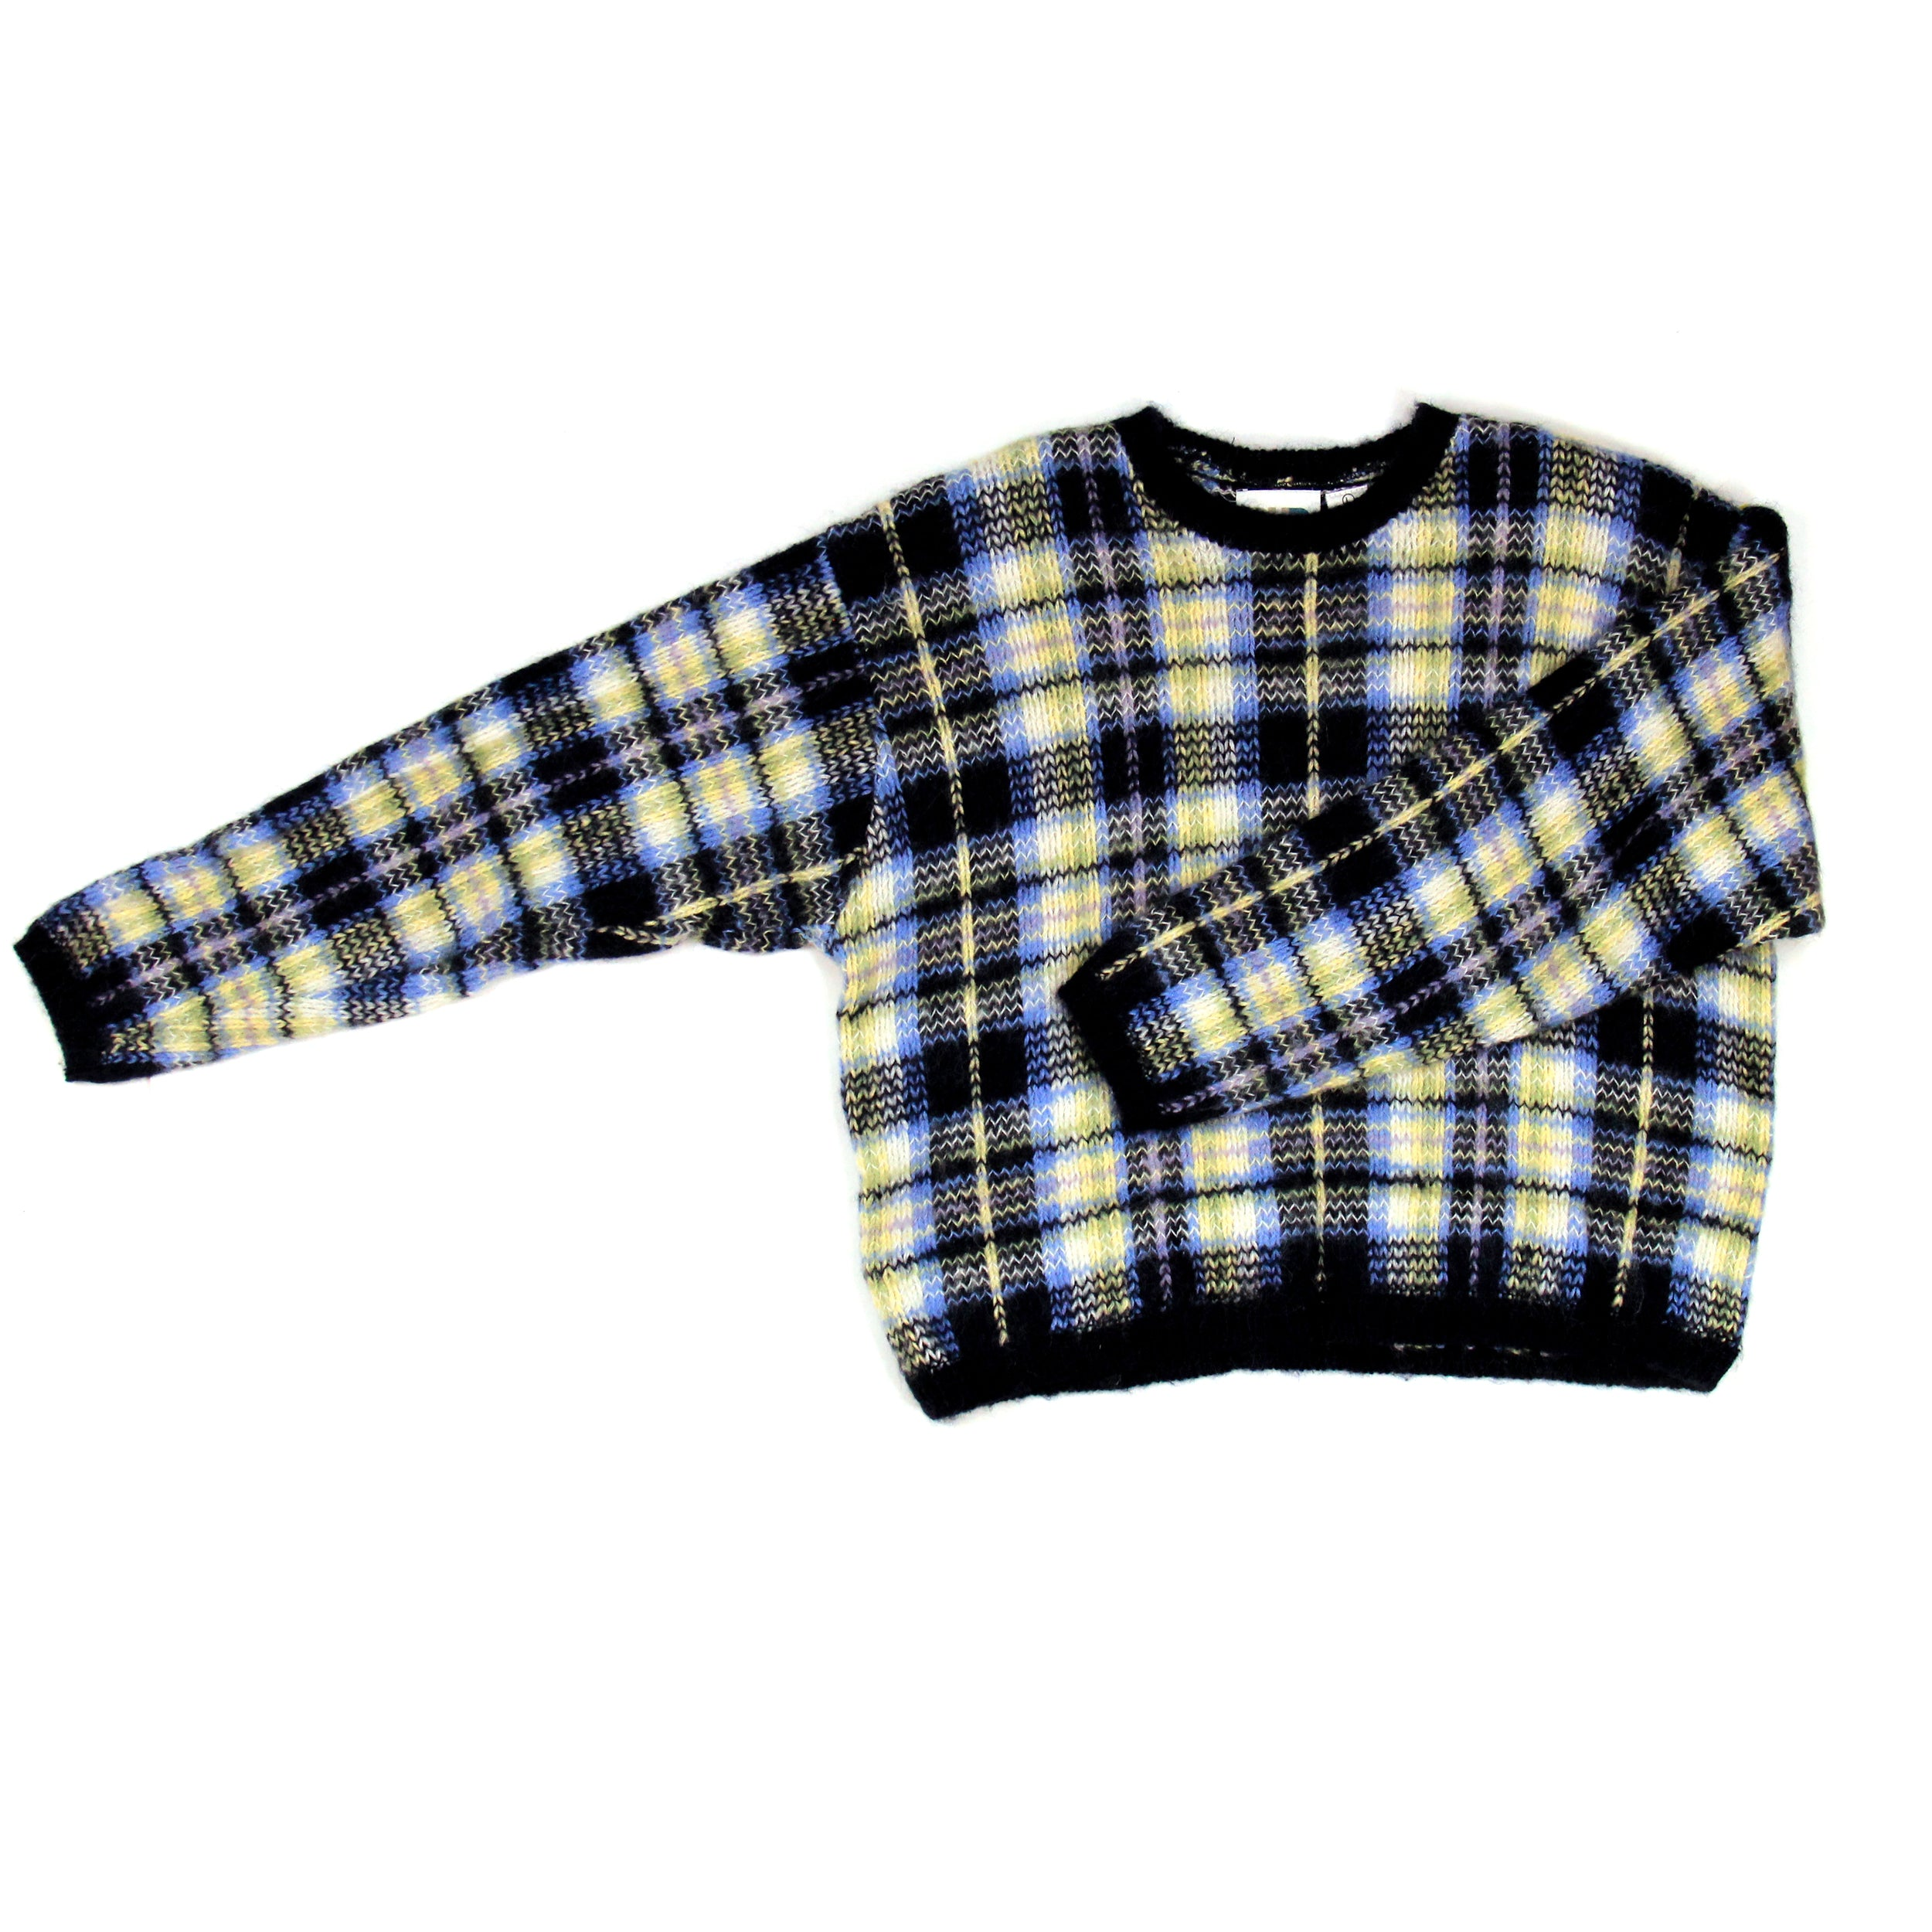 Paul Harris Design Checkered Sweater Size L